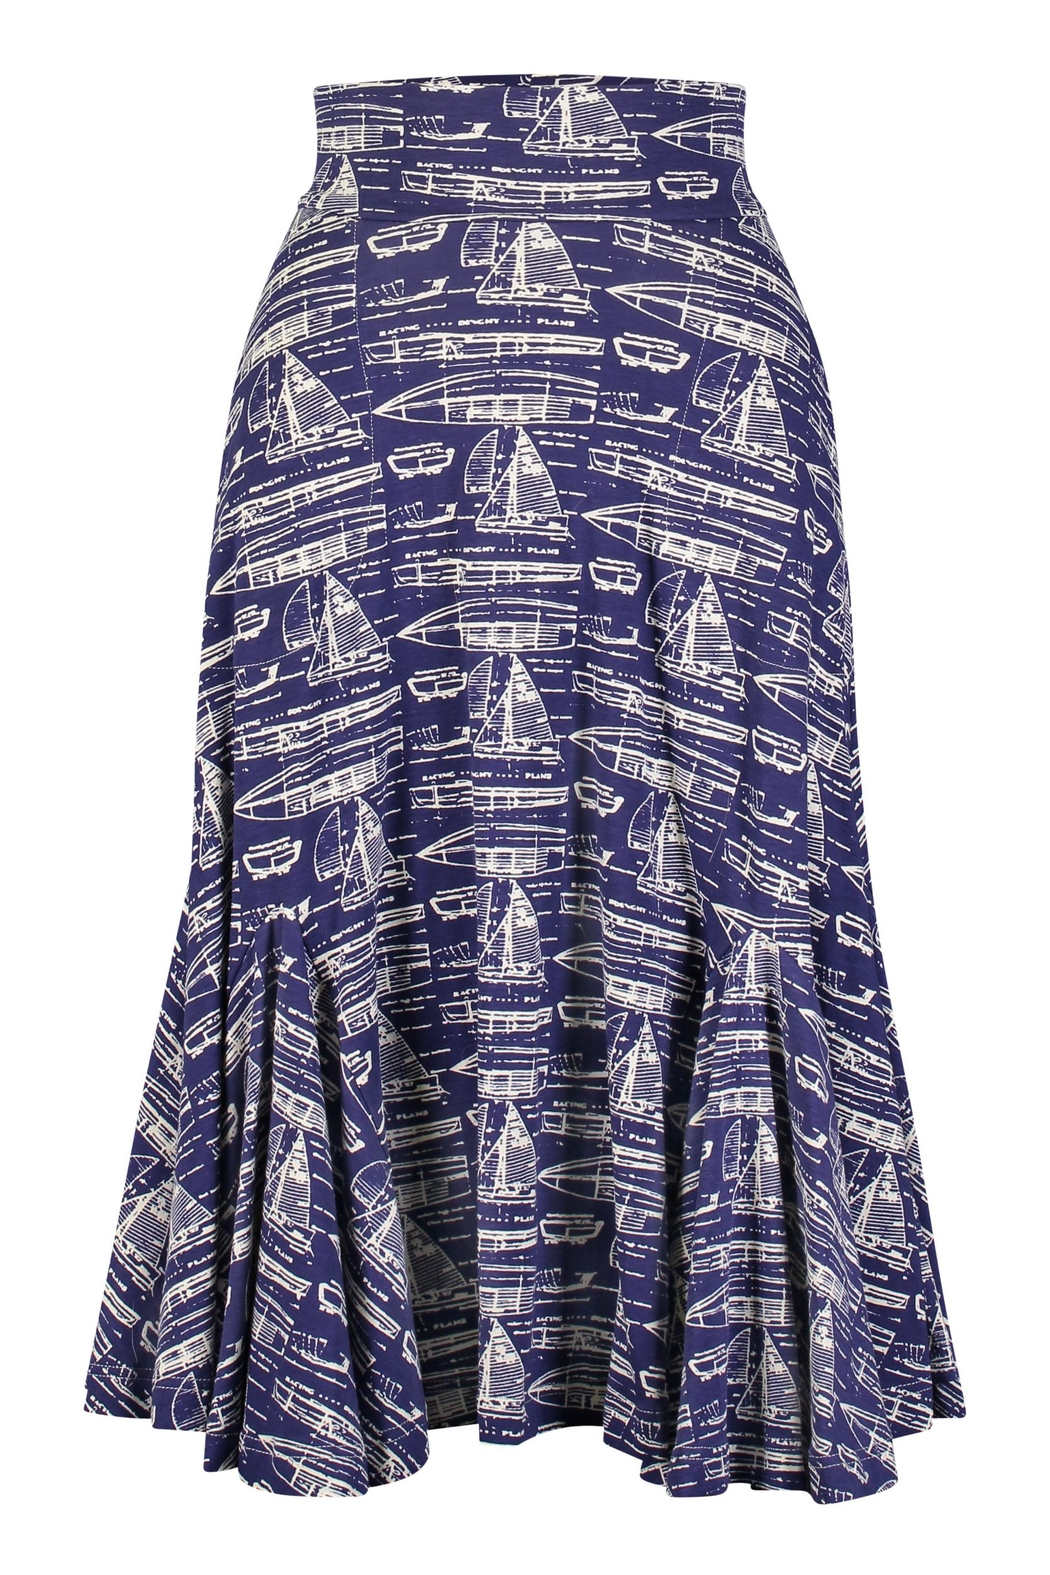 Effie's Heart Maritime Skirt - Front Cropped Image